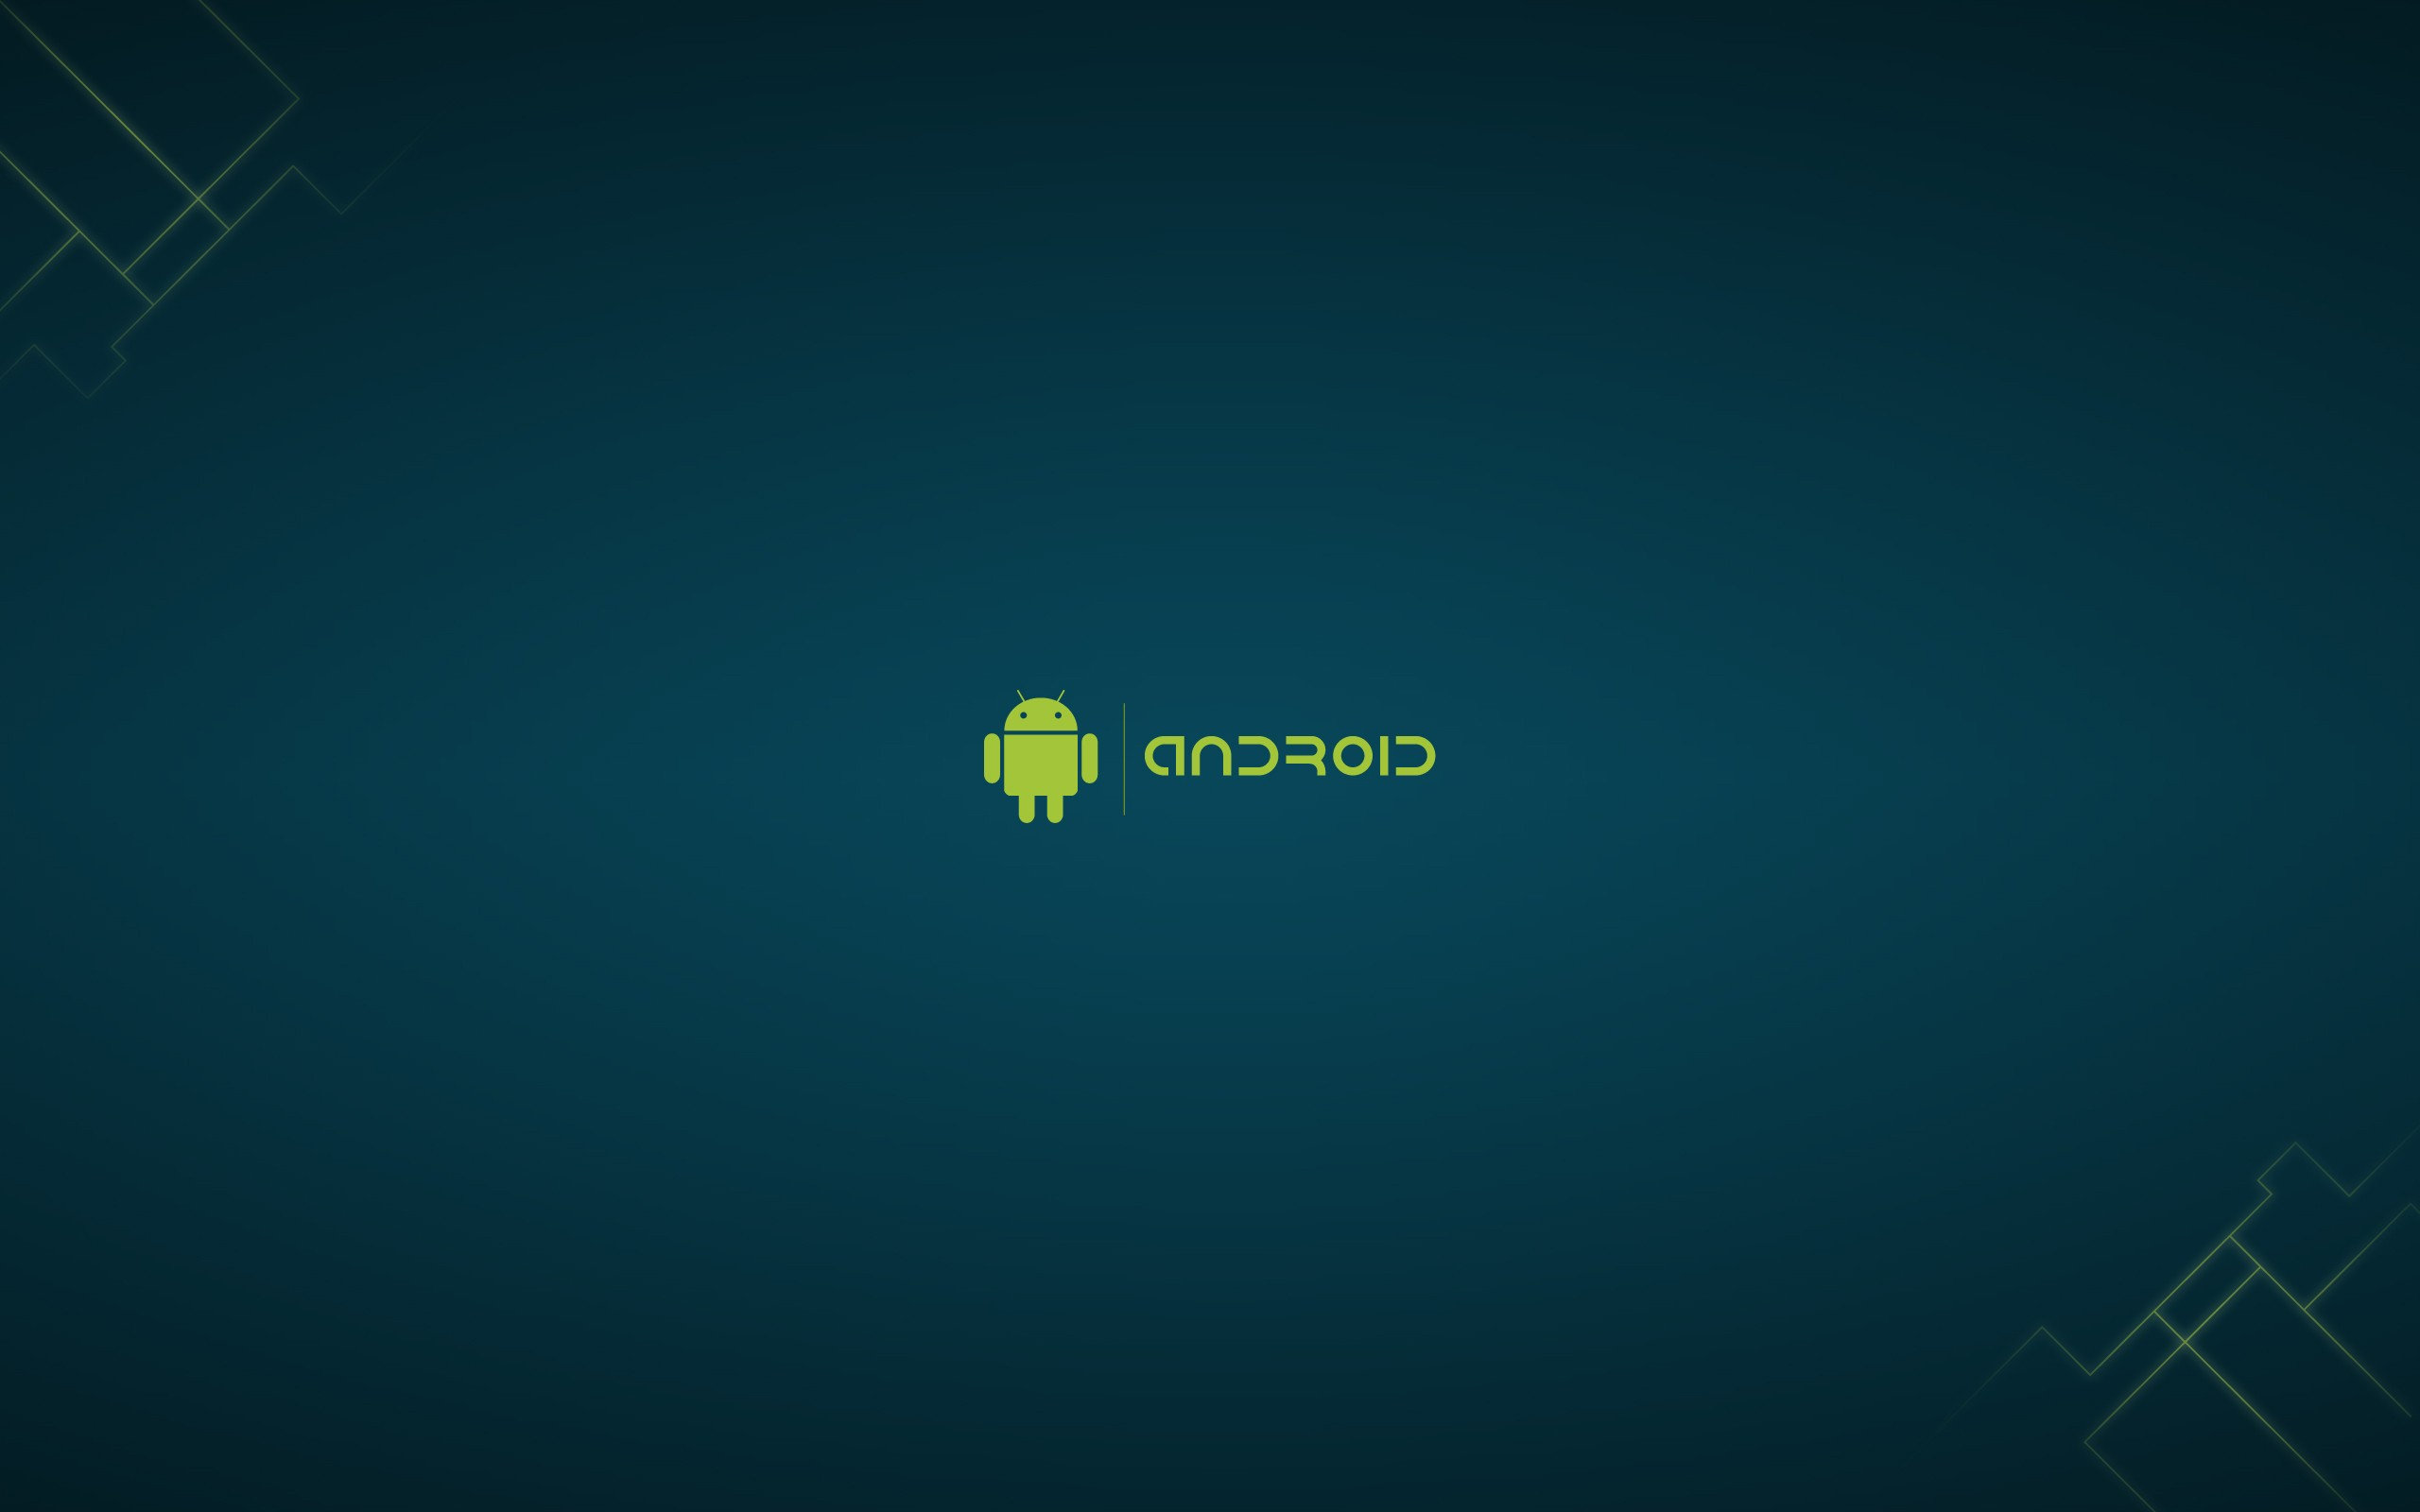 Awesome Wallpapers For Android